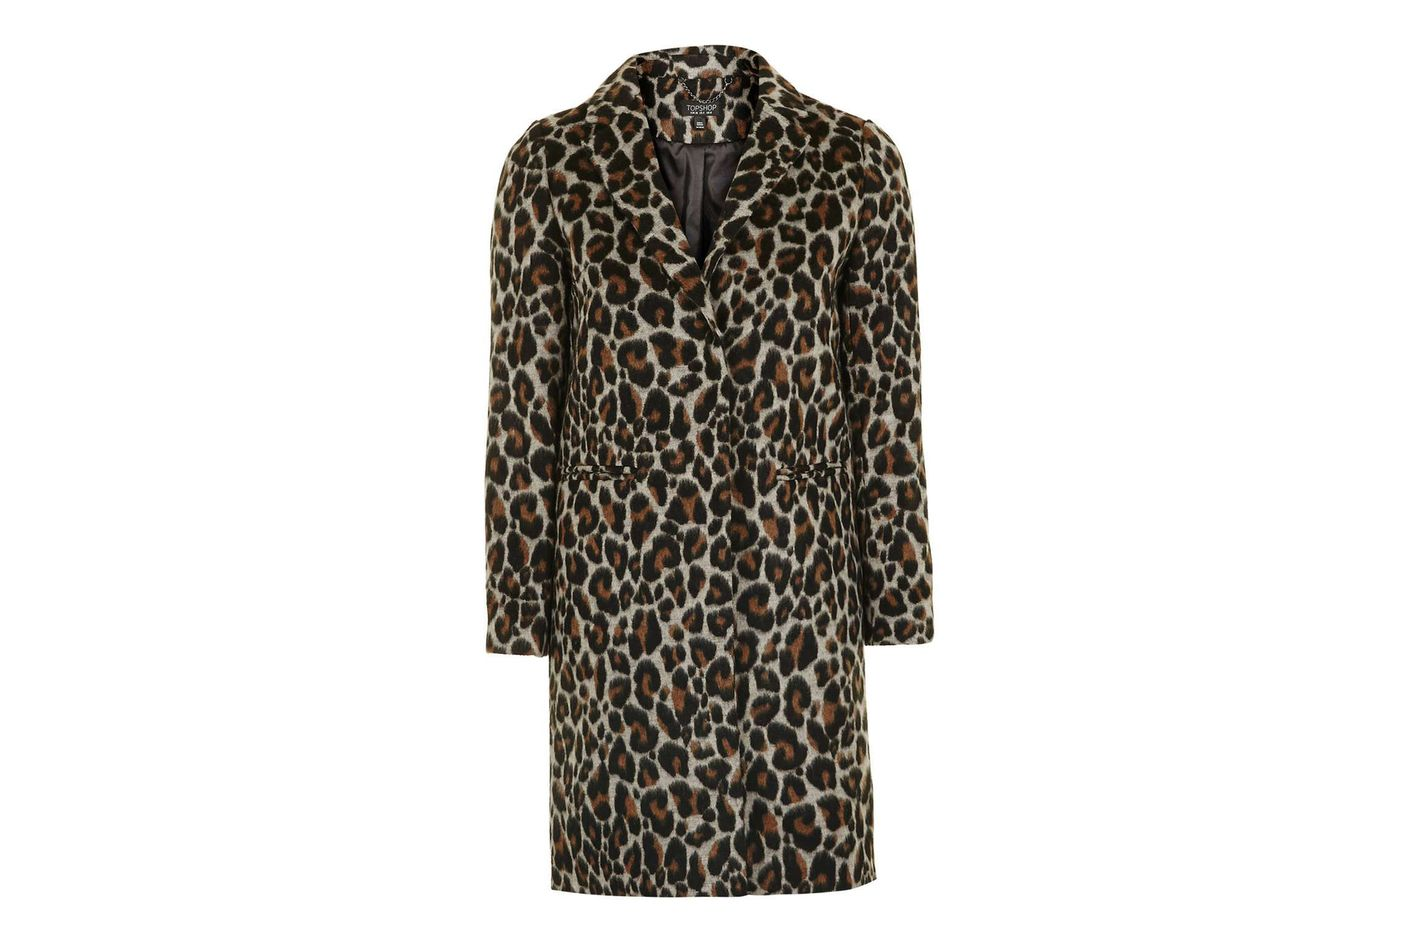 Top Shop Leopard Print Coat